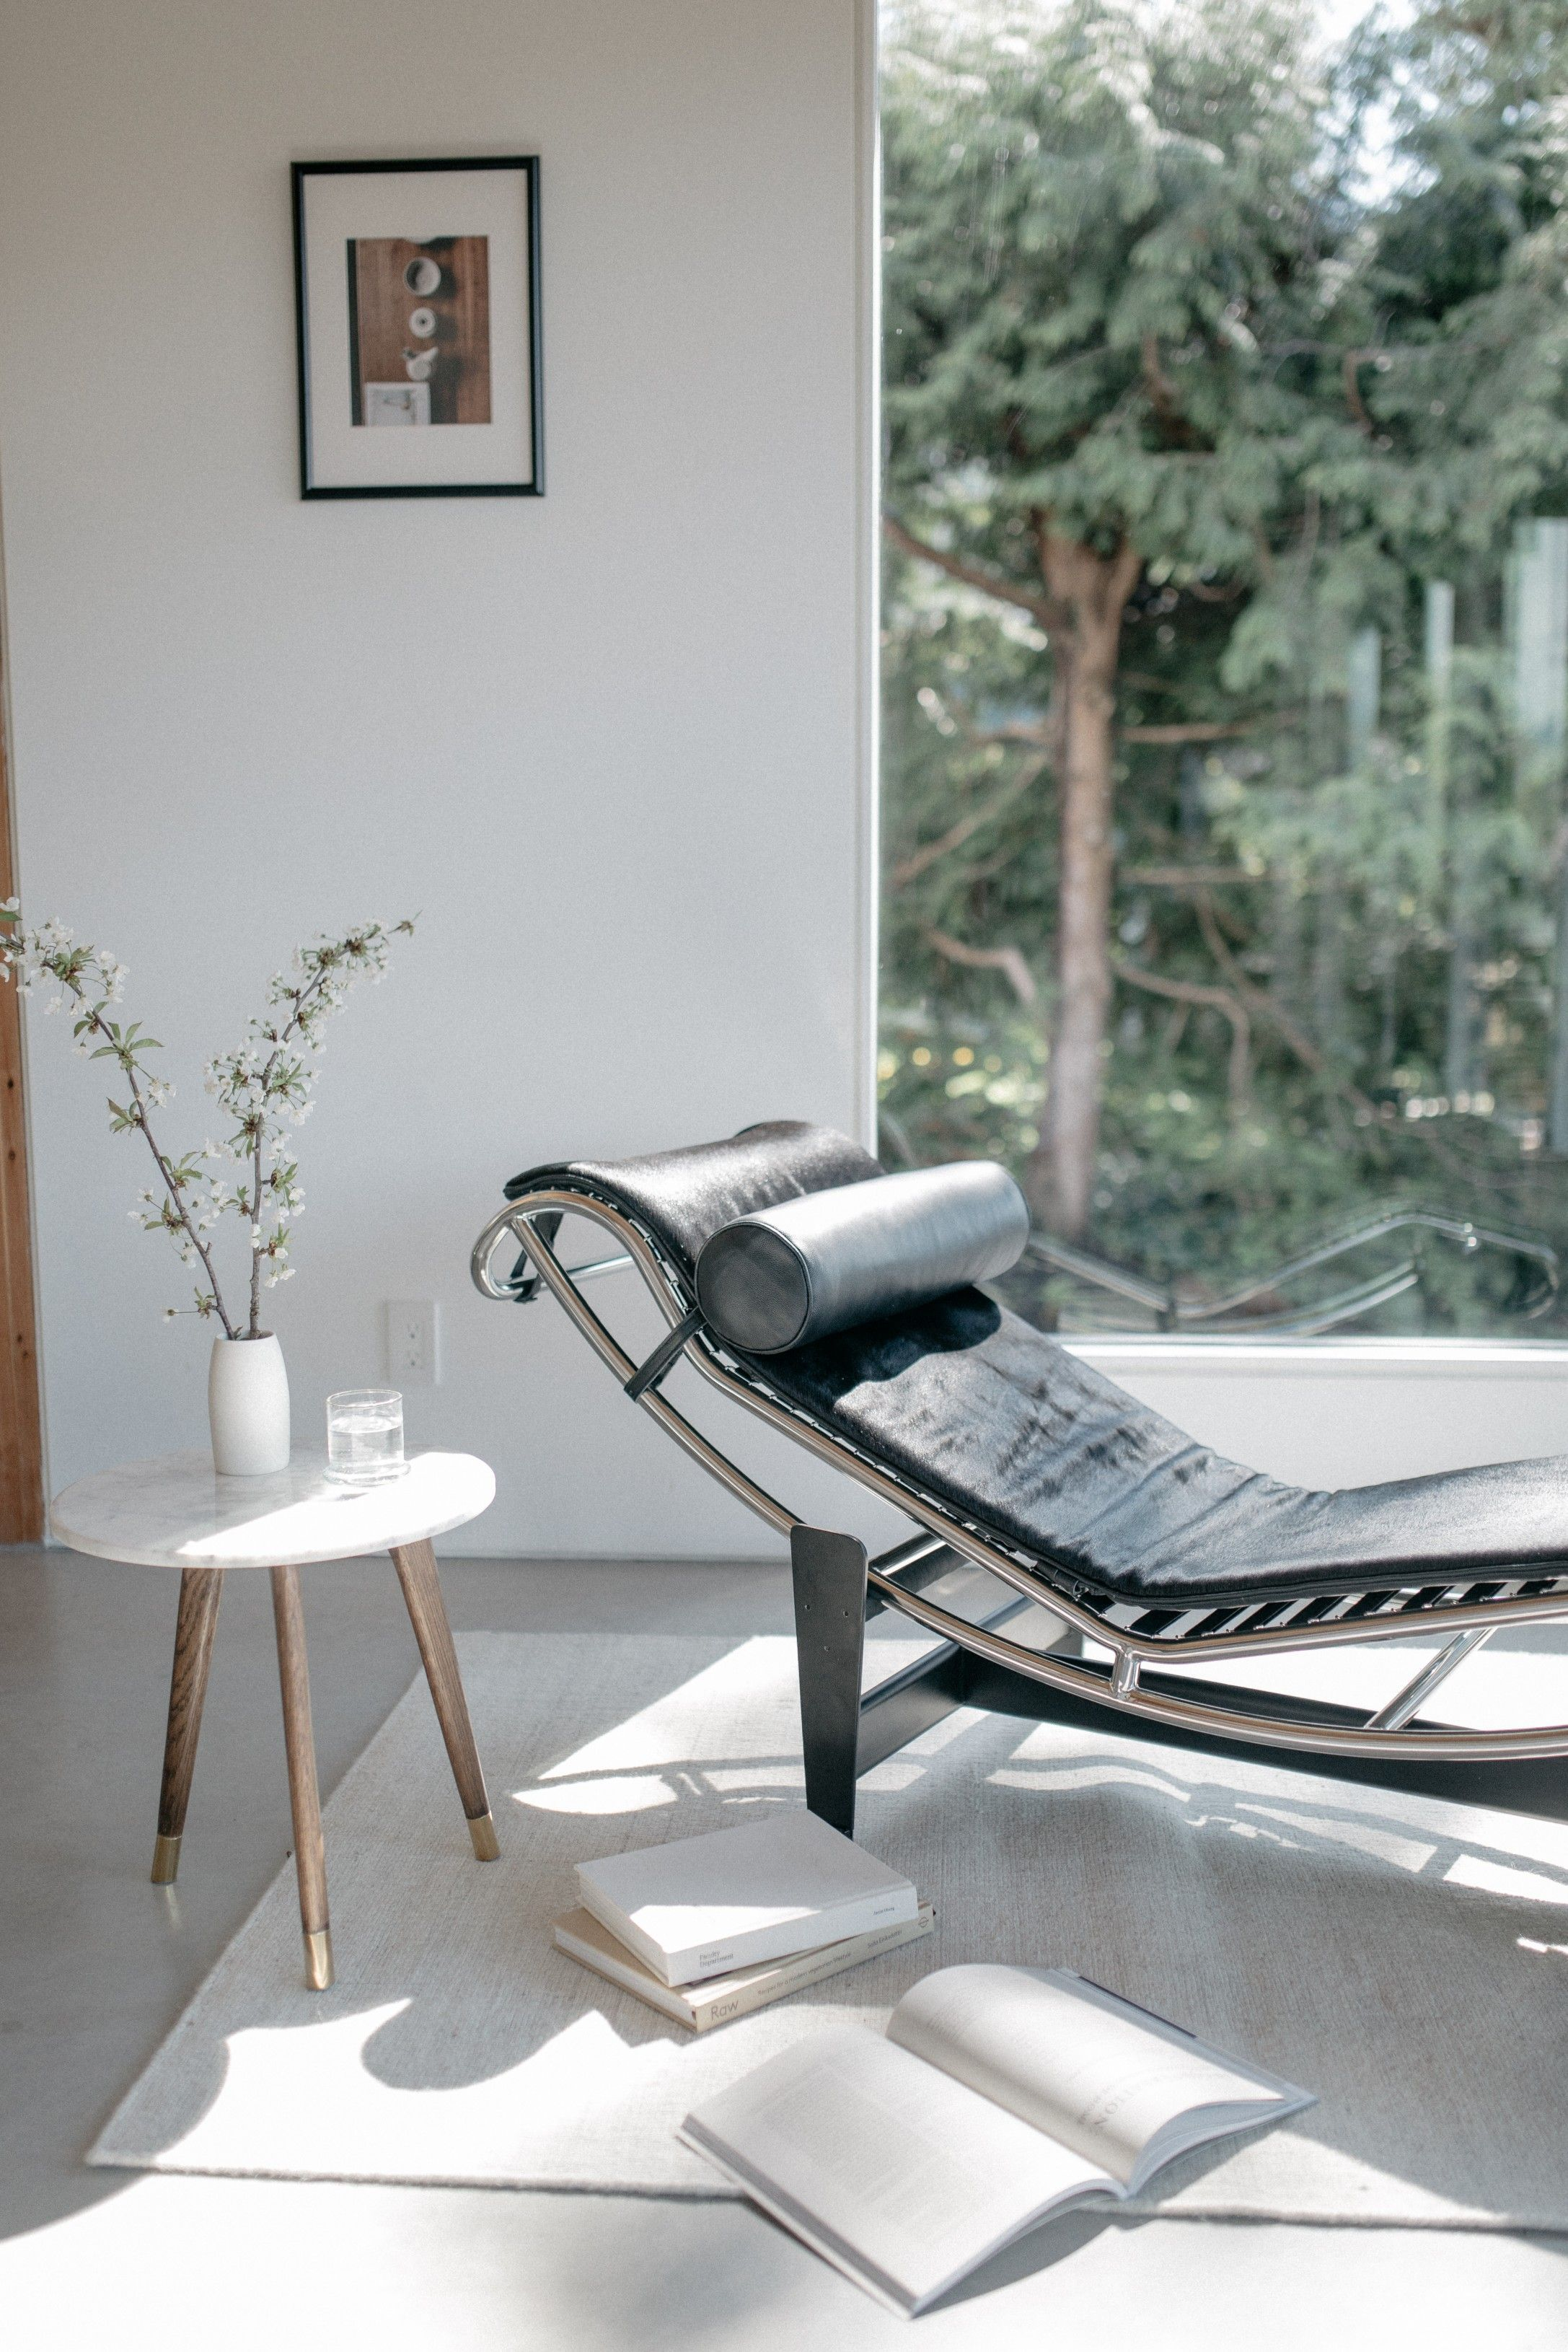 Le corbusier lc4 chaise longue 傢俱 in 2019 chaise